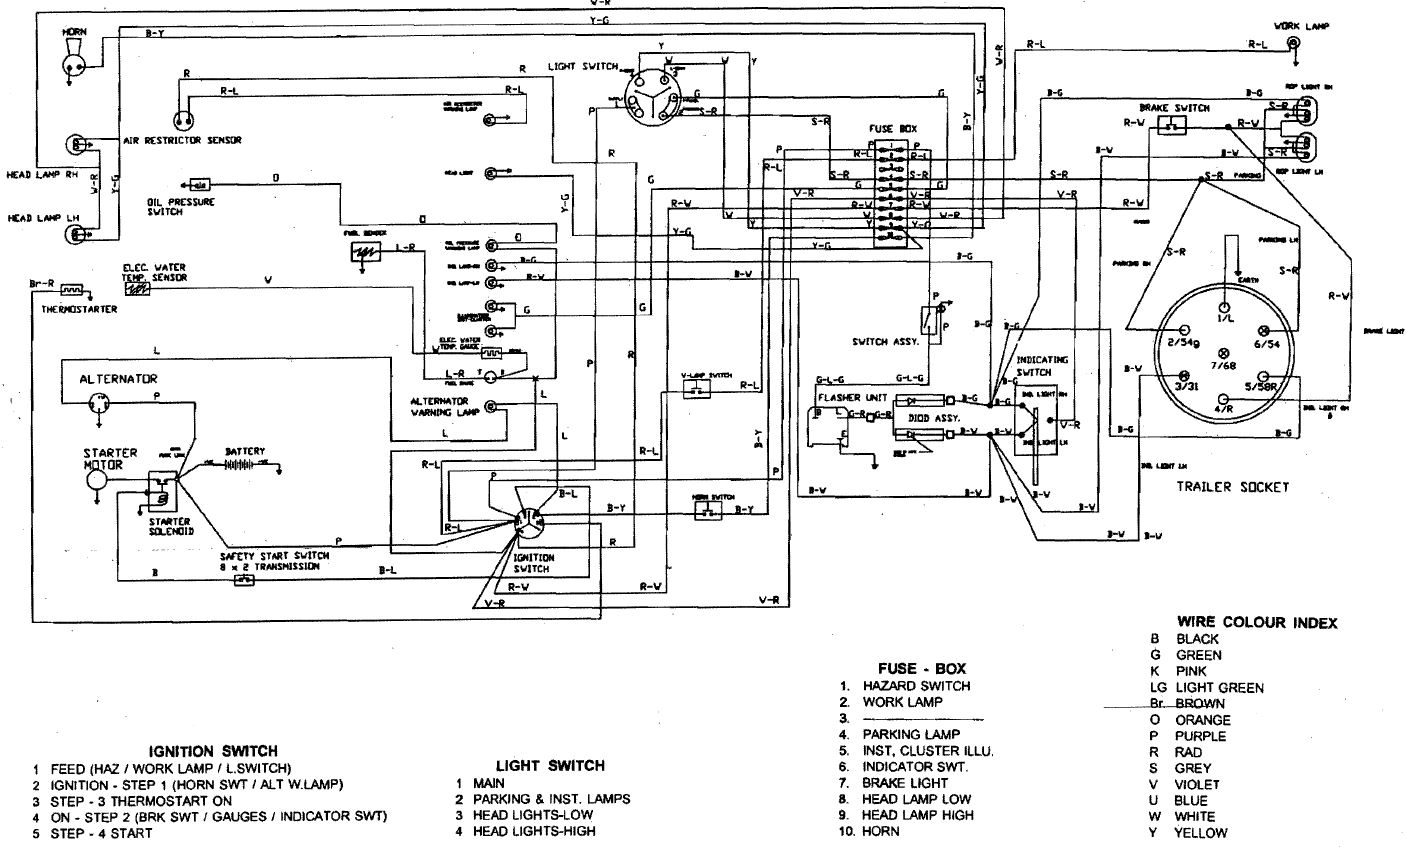 Cub Cadet 1420 Wiring Schematic Diagram Will Be A Thing 129 John Deere L120 Pto Clutch Free Lt1050 Electrical